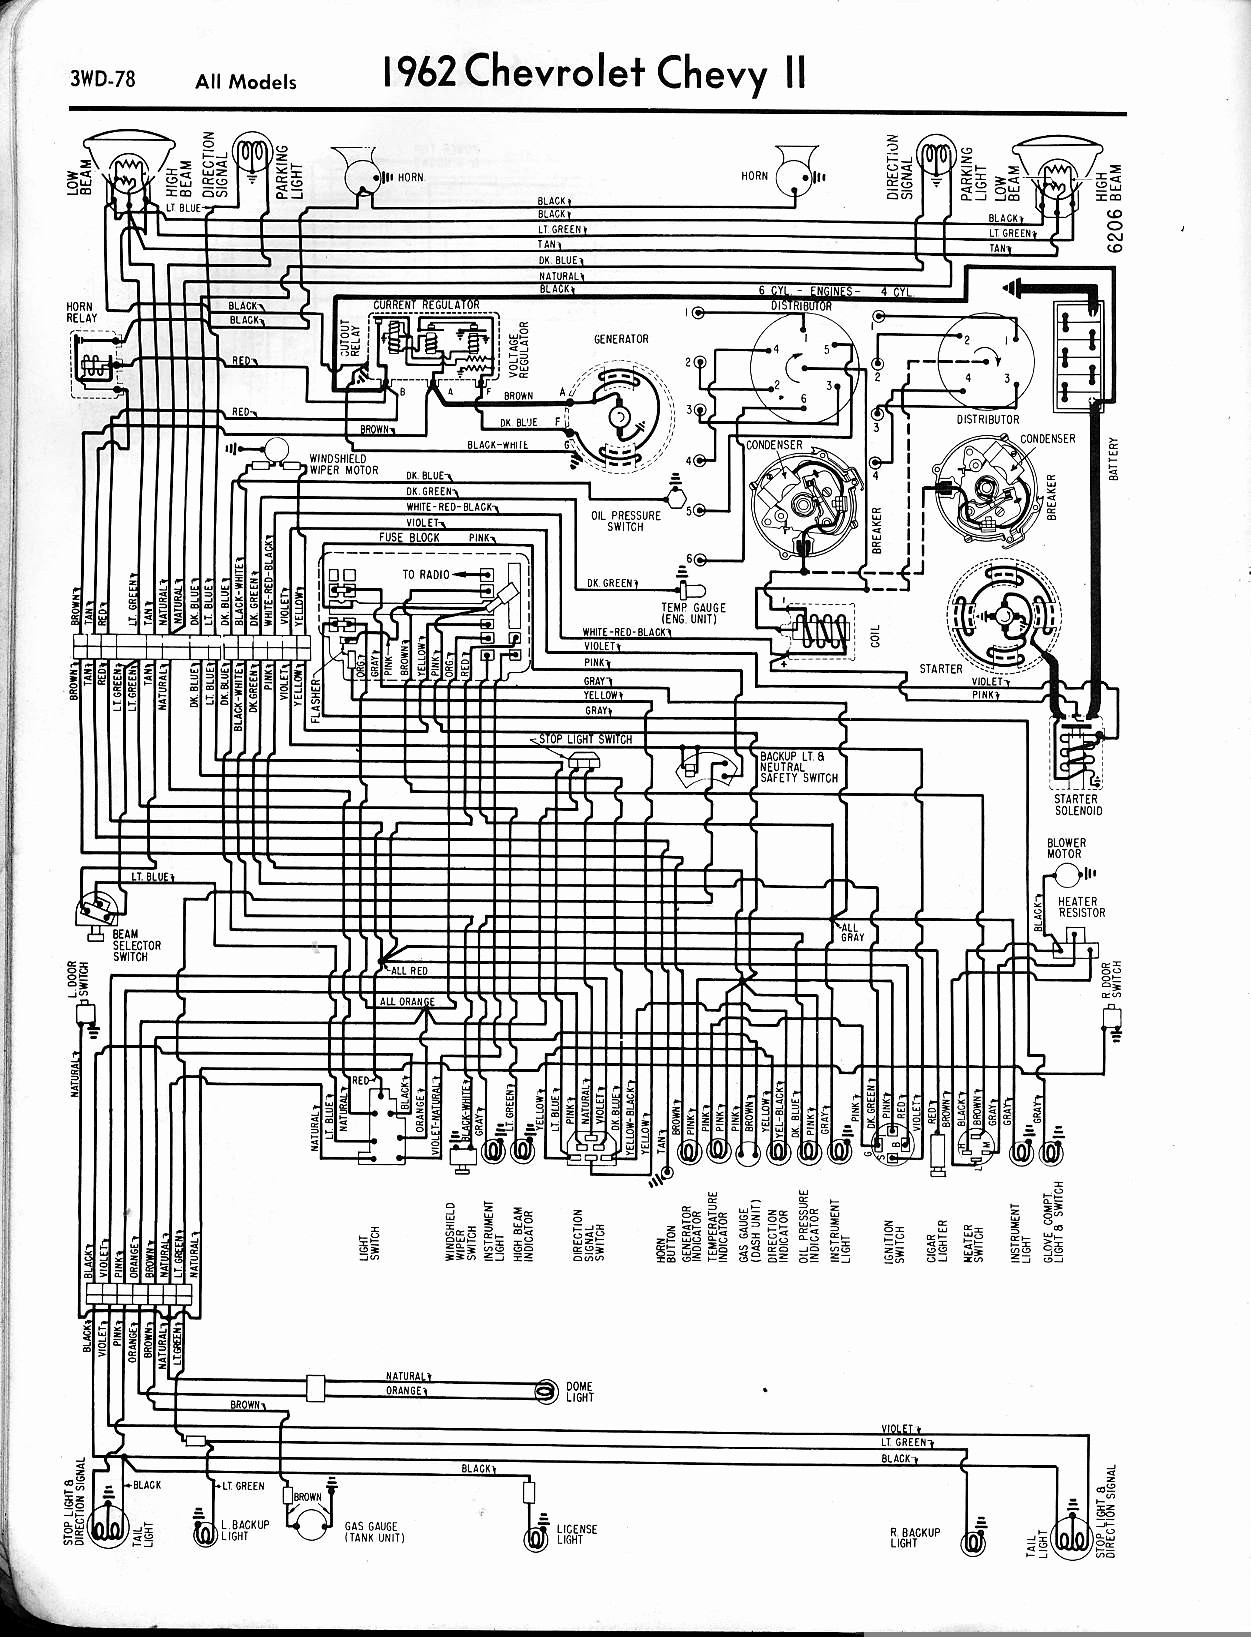 2001 Chevy Impala Engine Diagram 2001 Impala Gas Gauge Wiring Diagram Wiring Library Of 2001 Chevy Impala Engine Diagram